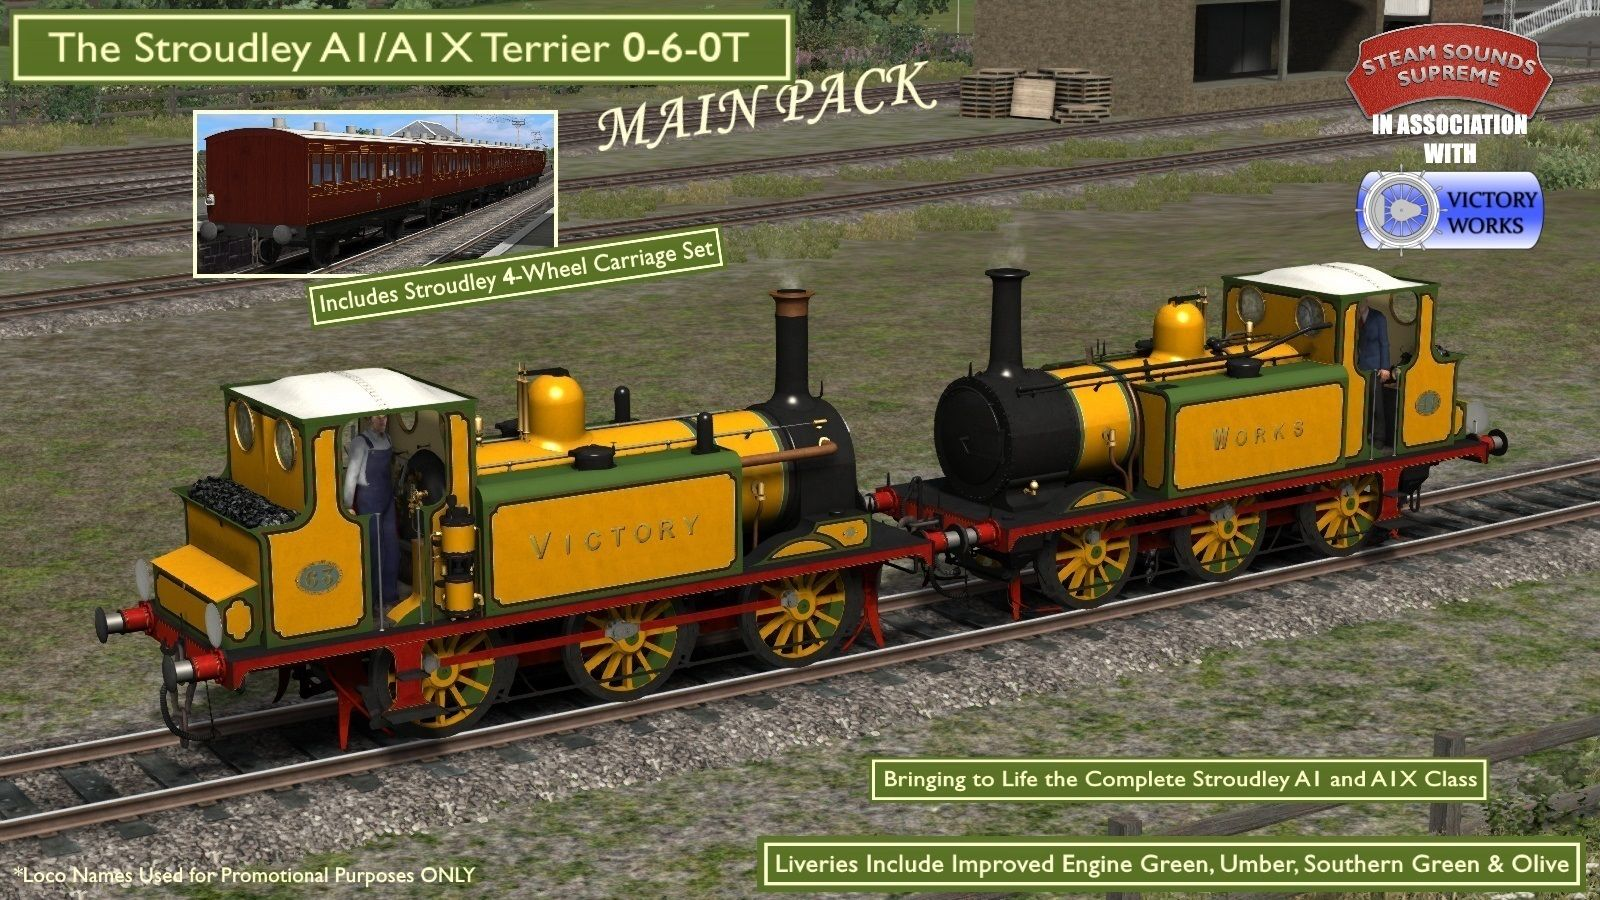 Stroudley A1/A1X Terrier 0-6-0T MAIN PACK